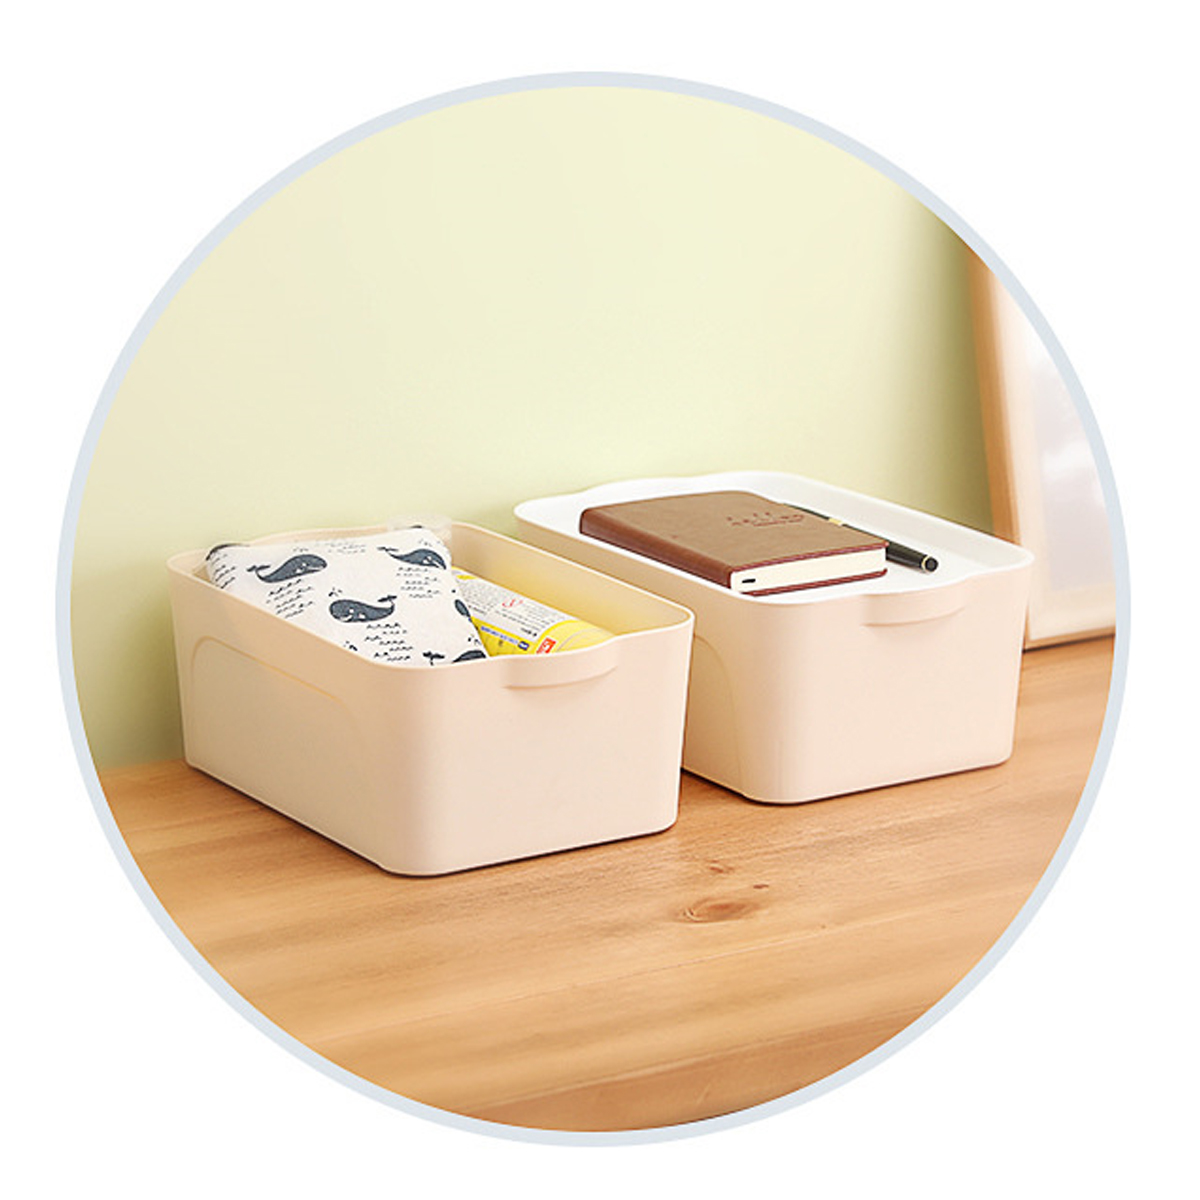 S/M/L Size Multi-functional Storage Box Plastic Storage Baskets Clothing Toys Sundries Containers Desktop Books Files Documents Organizer